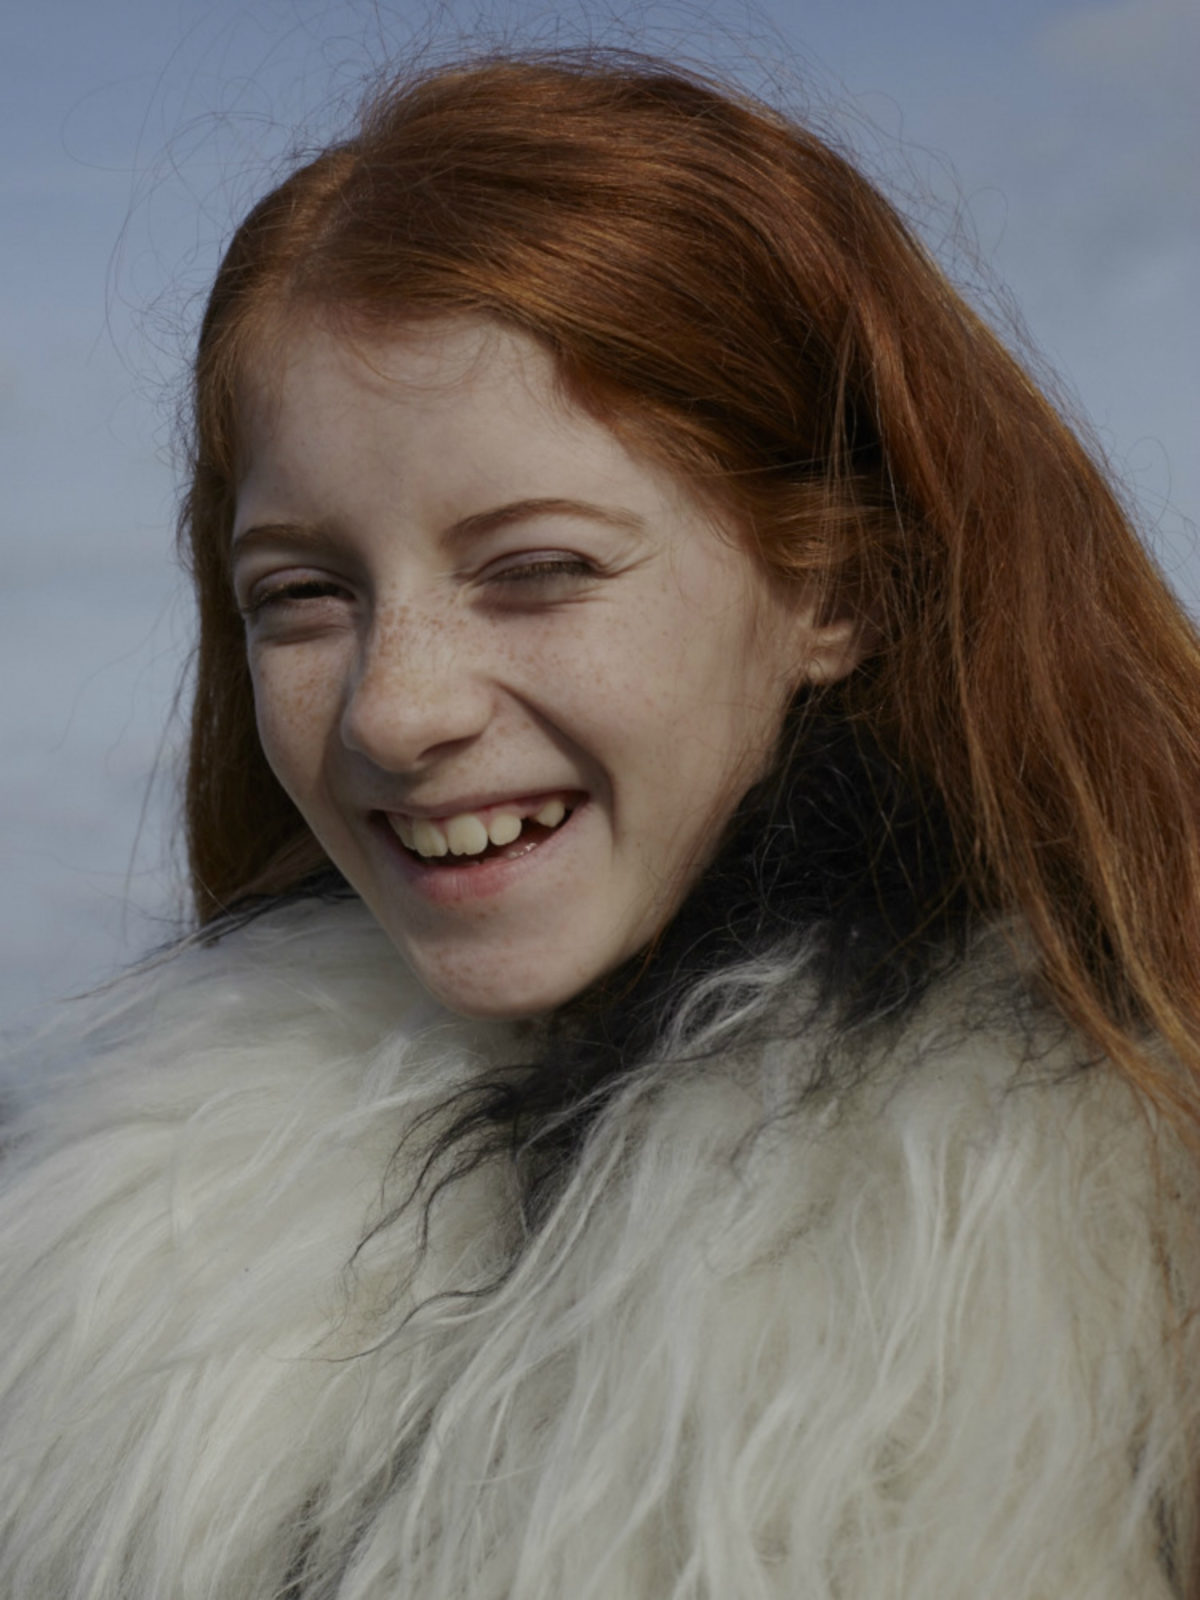 RED HEADS: THE BEAUTY OF MC1R // PHOTOGRAPHY BY CLARA NEBELING